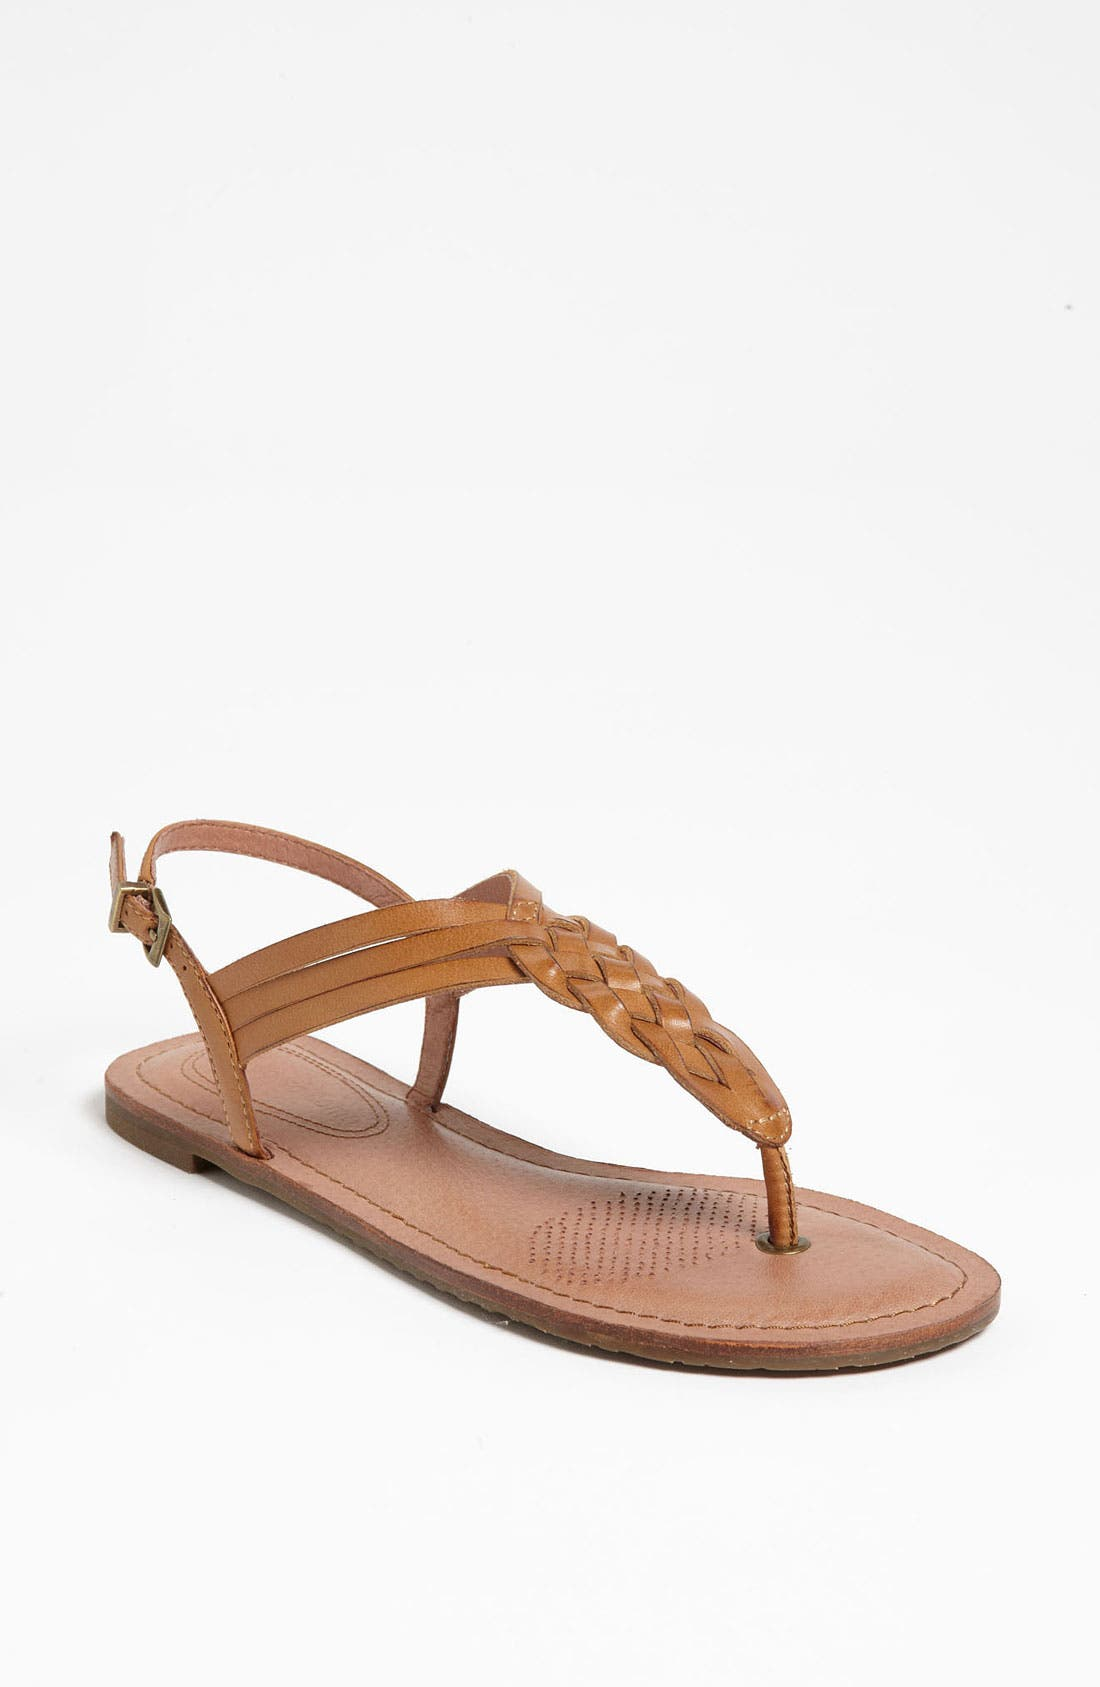 Alternate Image 1 Selected - Corso Como 'Friendship' Sandal